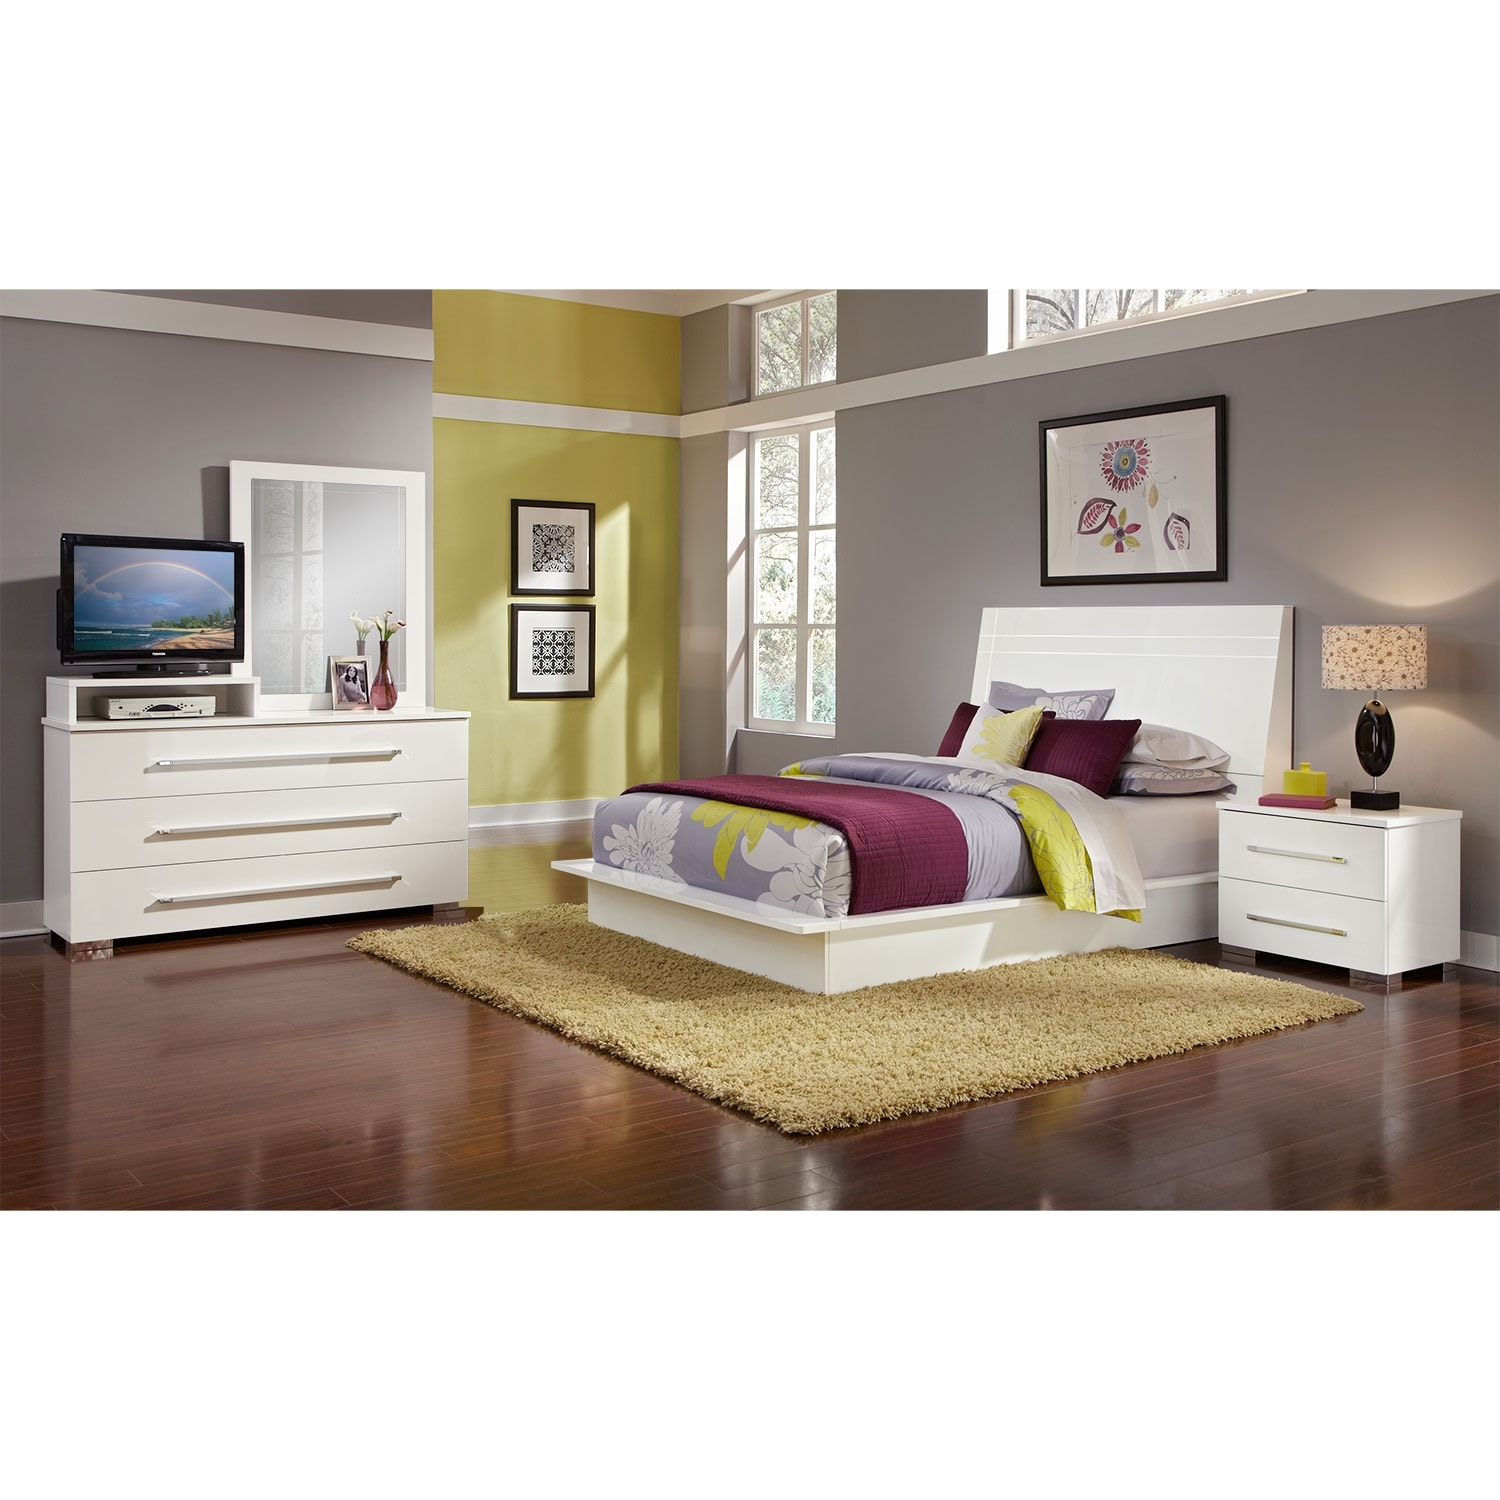 Click to change image. Dimora 6 Piece Queen Panel Bedroom Set with Media Dresser   White